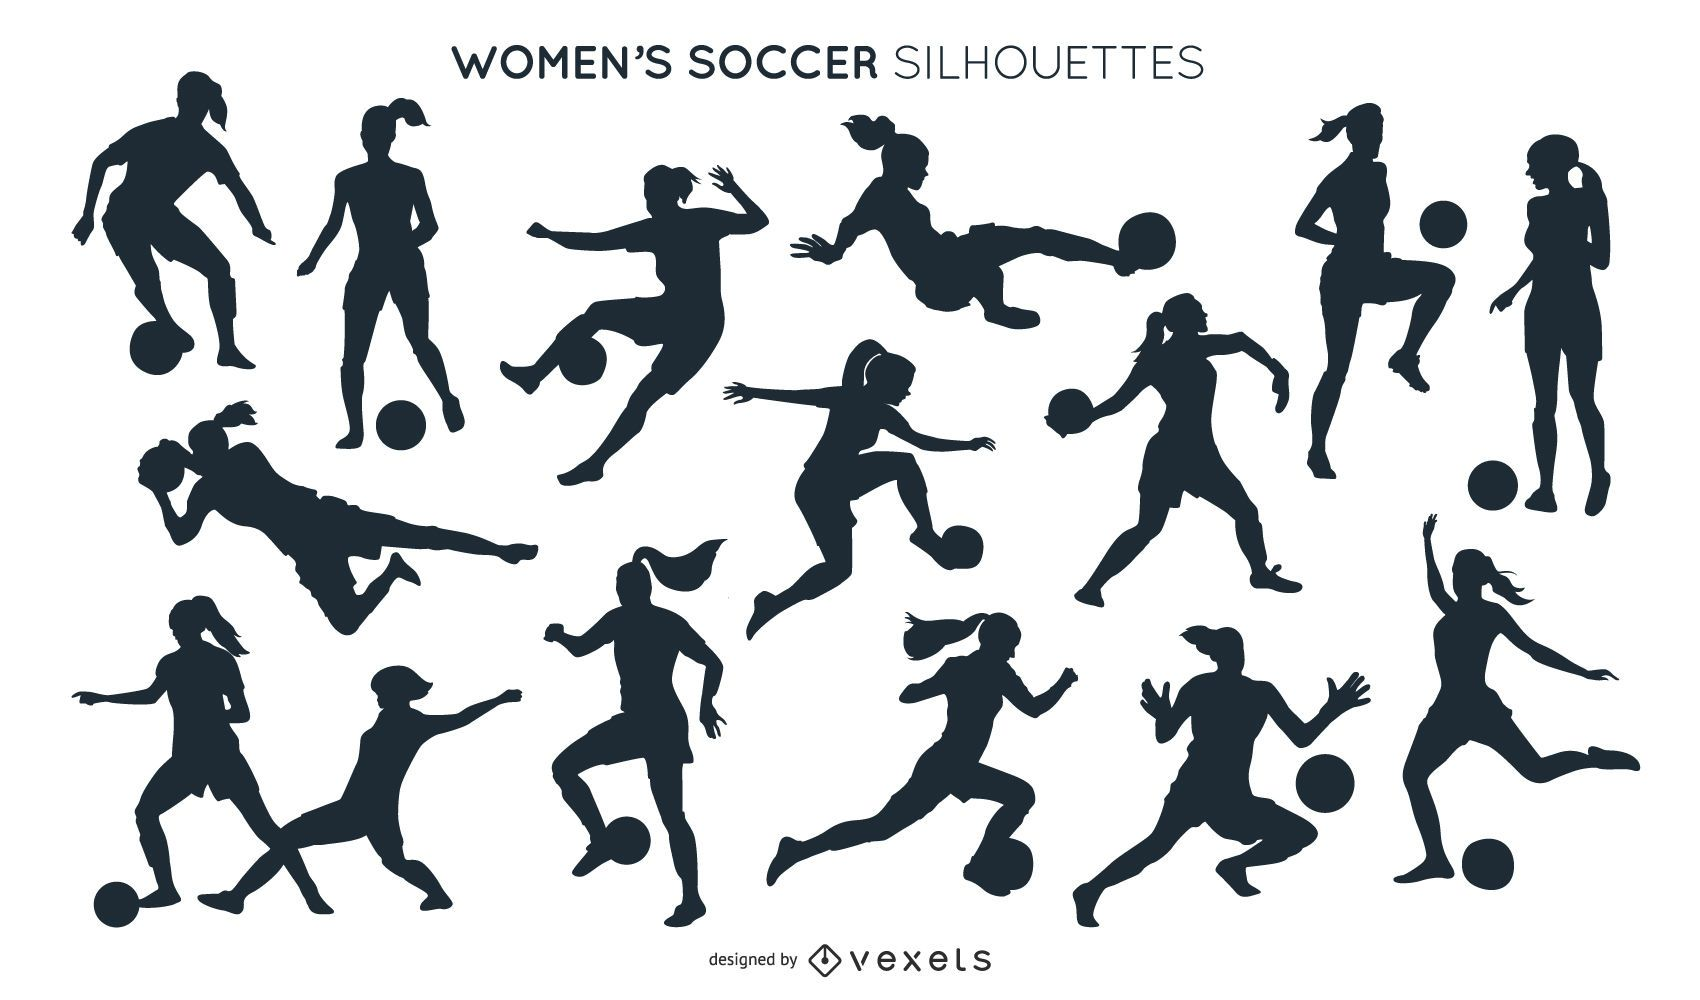 Women's soccer silhouettes collection